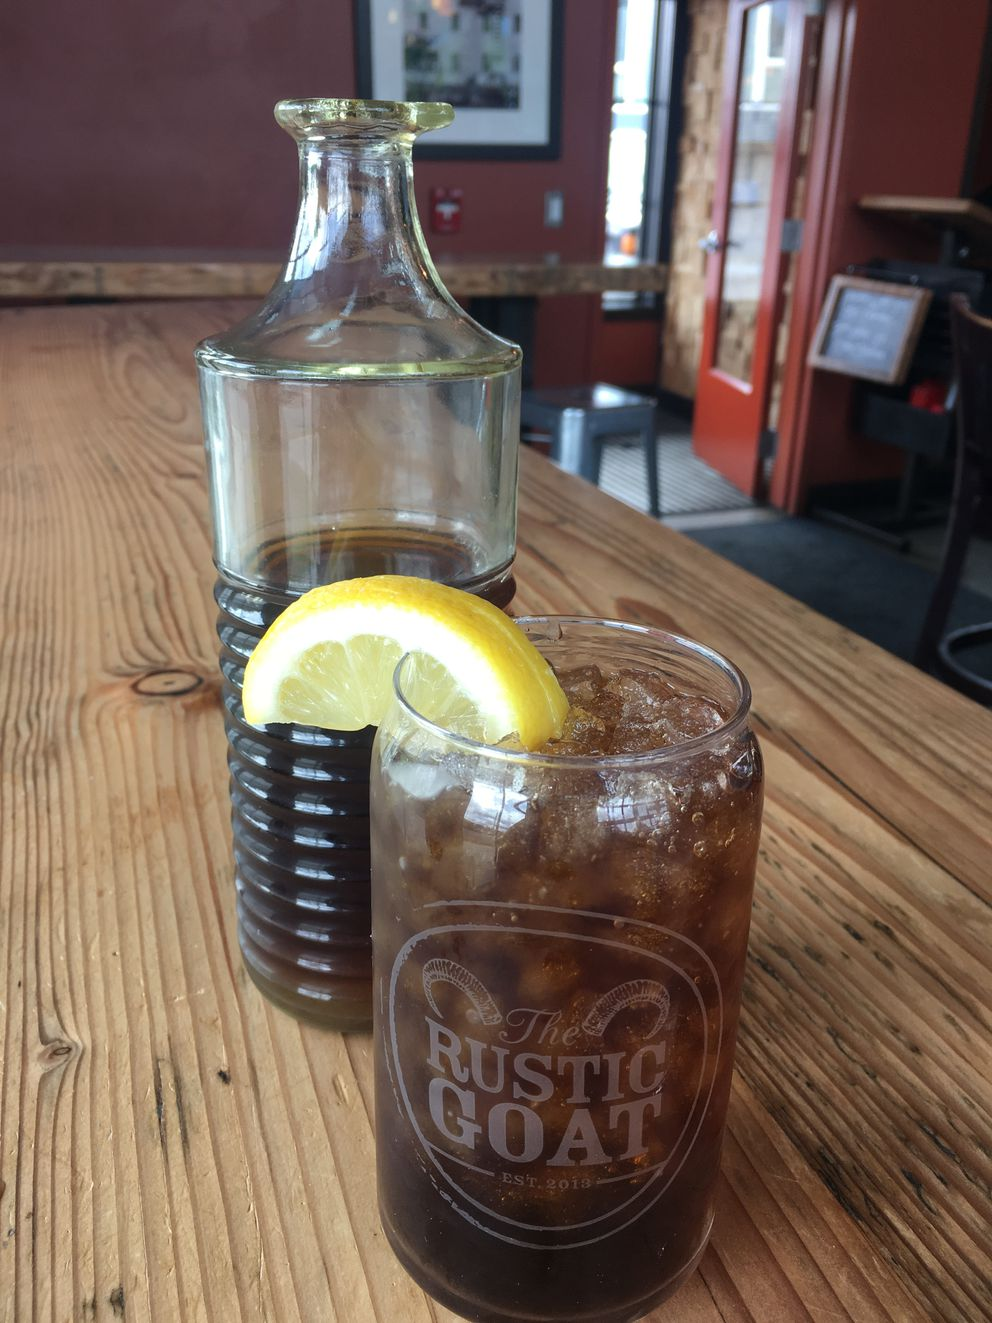 Iced tea at Rustic Goat in West Anchorage. (Photo by Mara Severin)